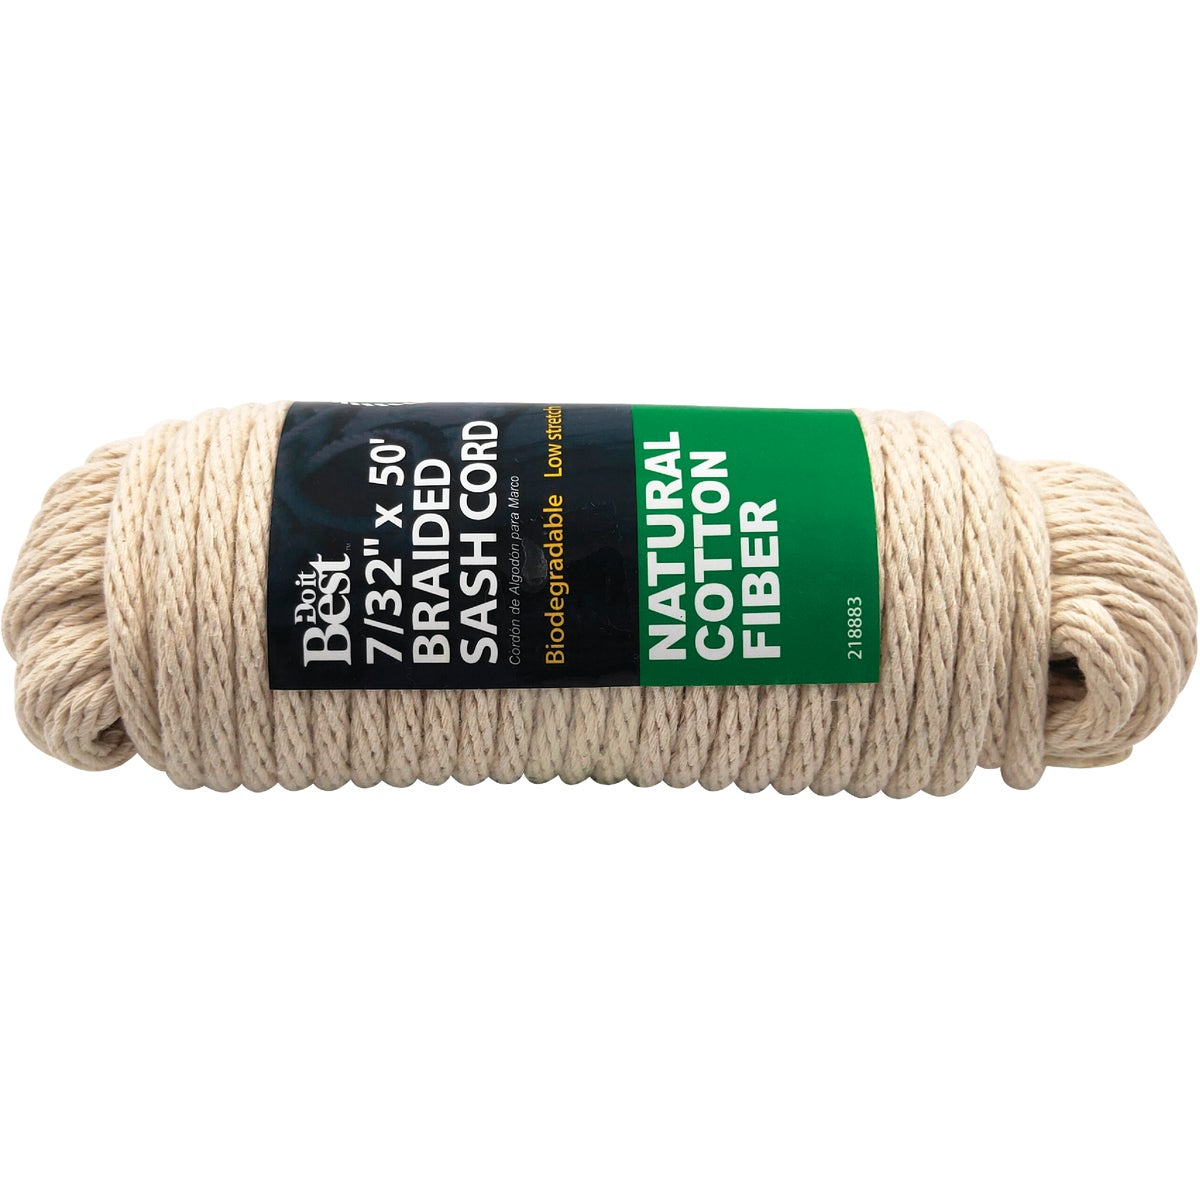 50' #7 COTTON SASH CORD